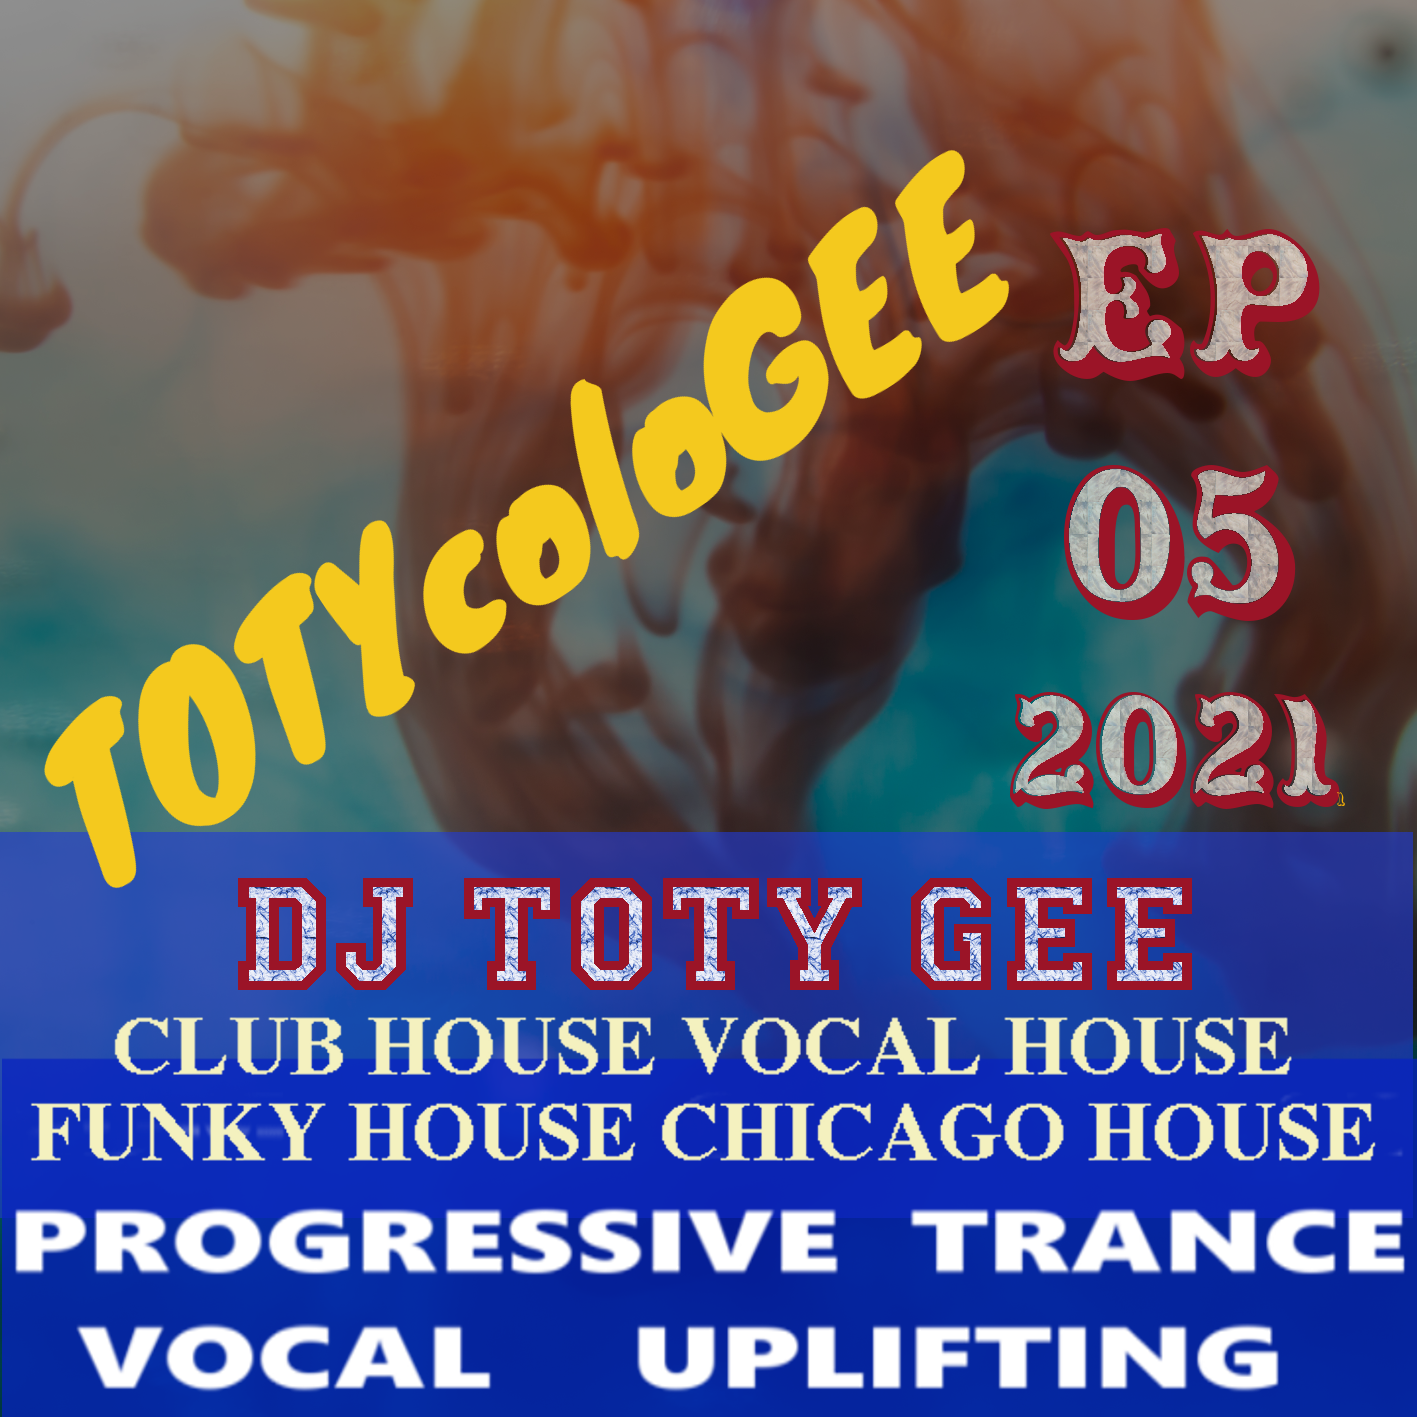 TOTYcoloGEE 2021 – 05 – DJ TOTY GEE Live!